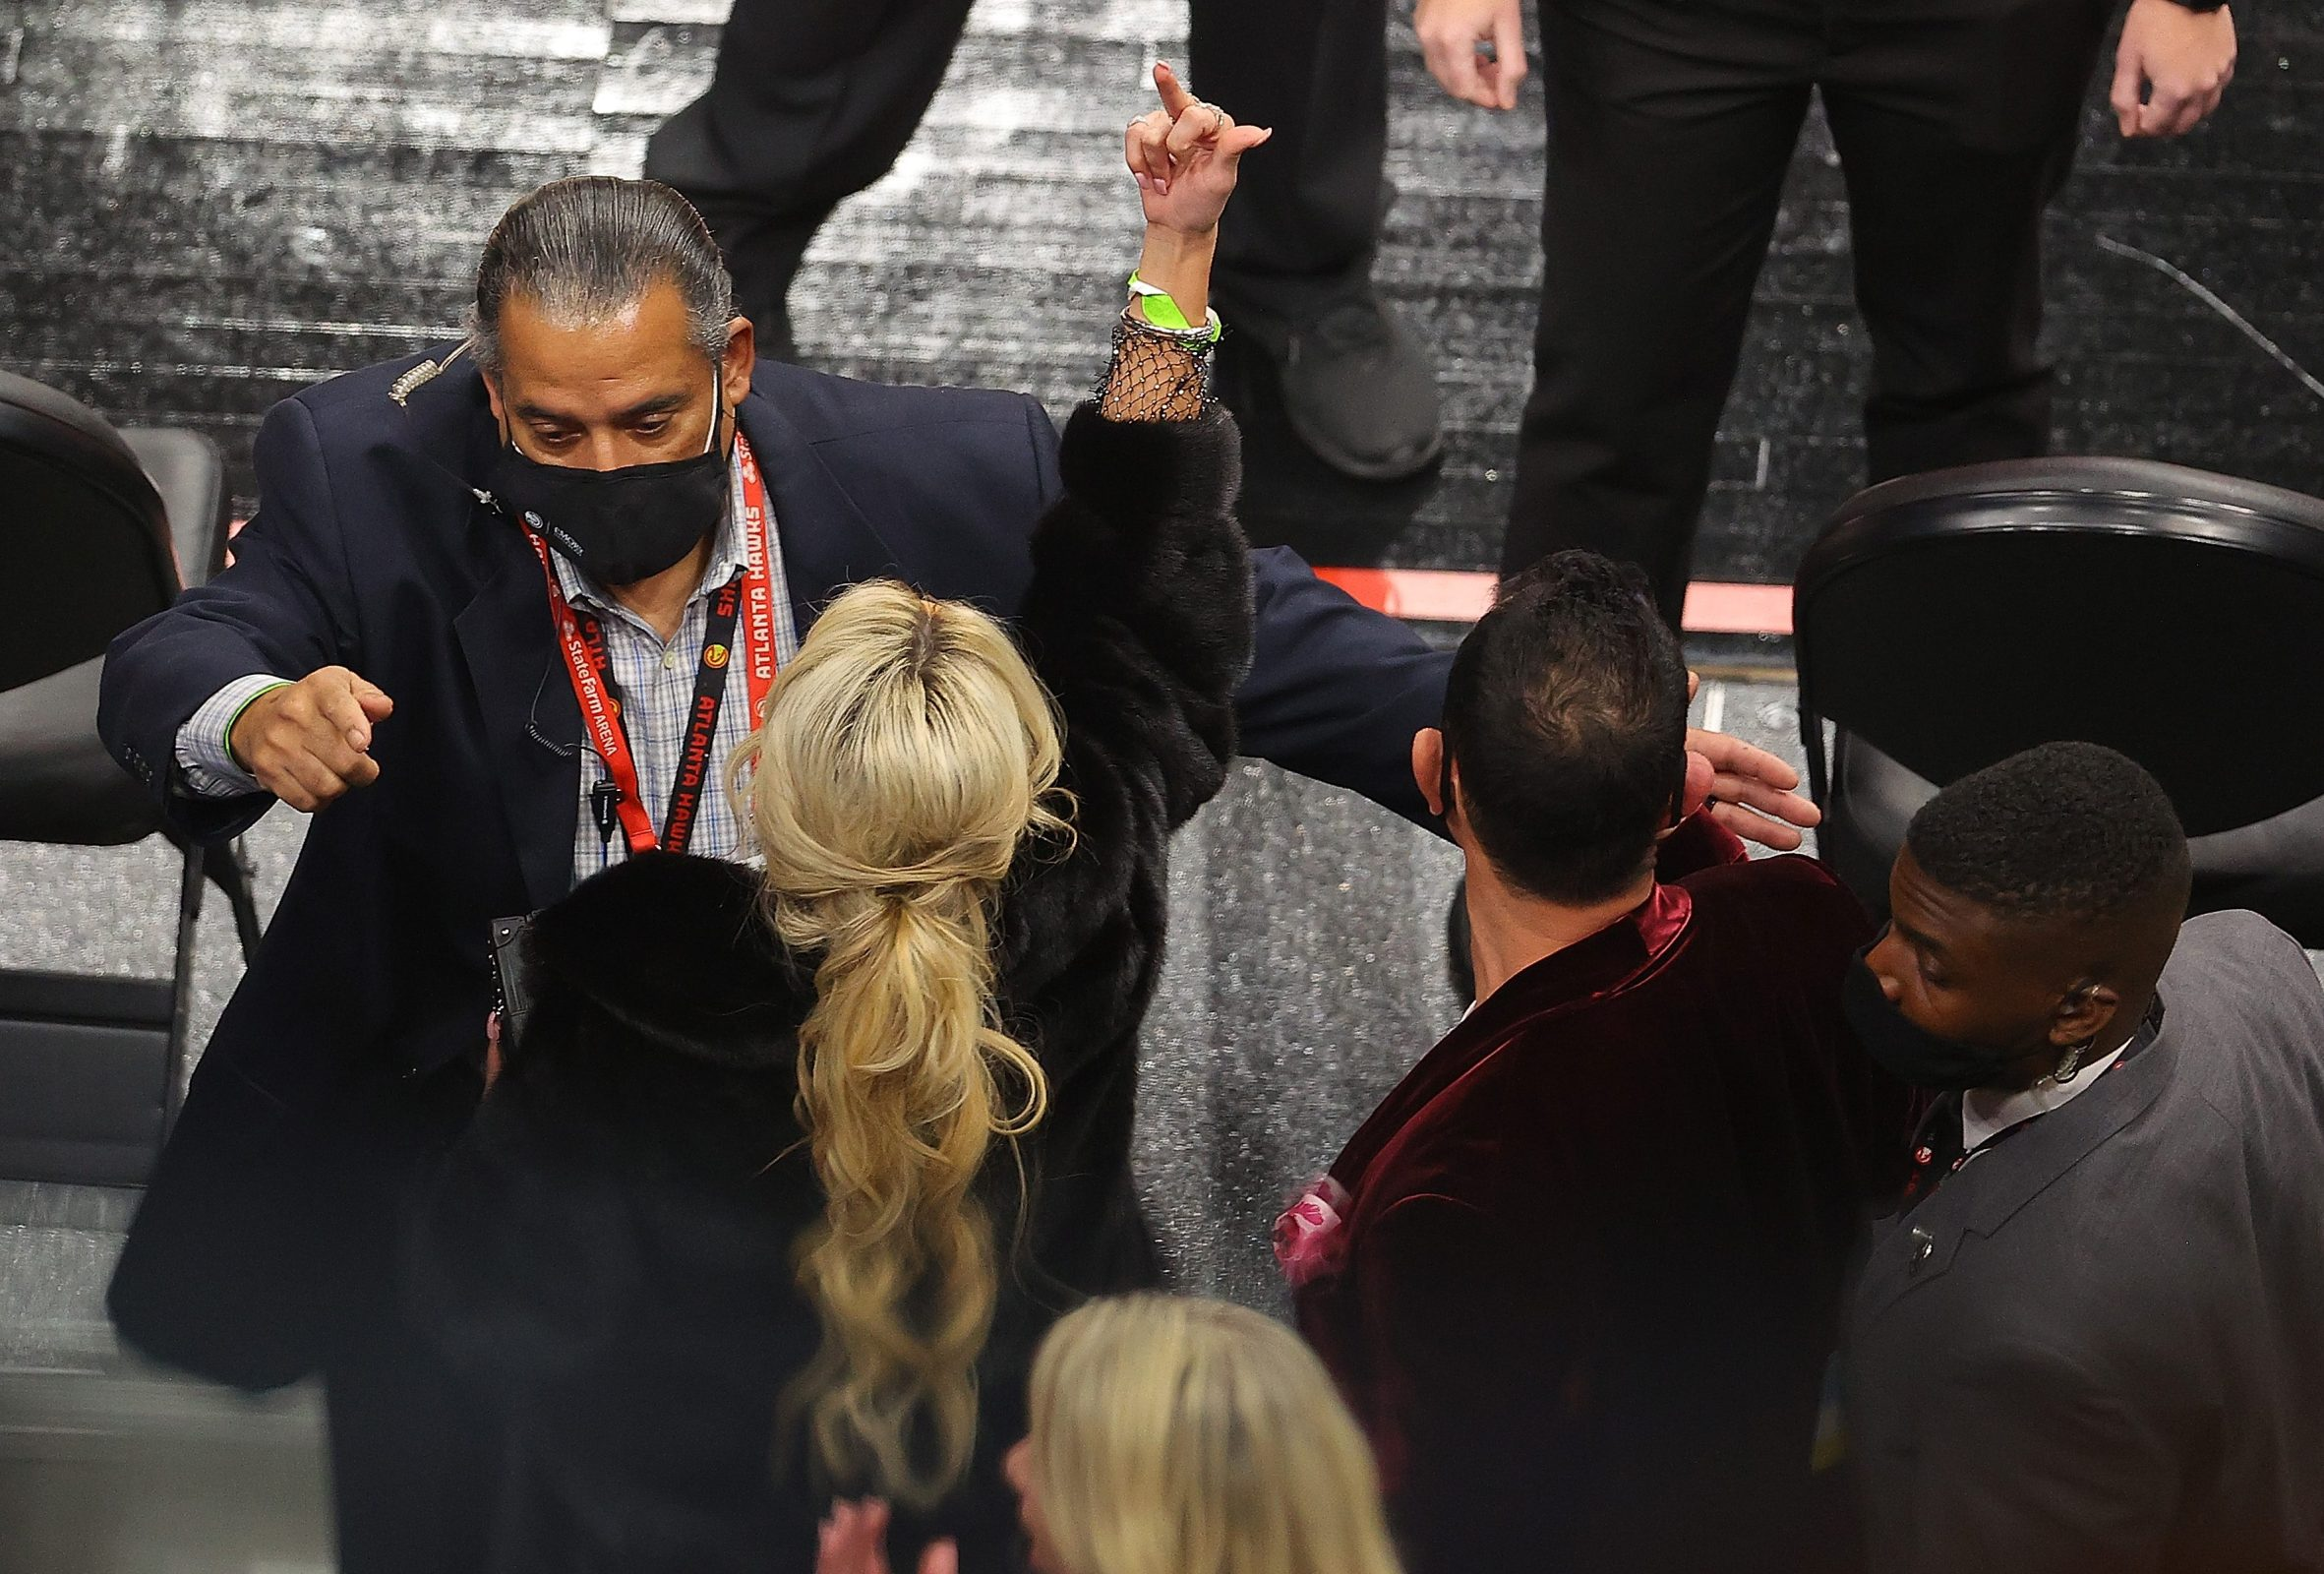 A fan gestures as she and her party are escorted out of the arena during the second half of the game between the Los Angeles Lakers and the Atlanta Hawks at State Farm Arena on February 01, 2021 in Atlanta, Georgia.